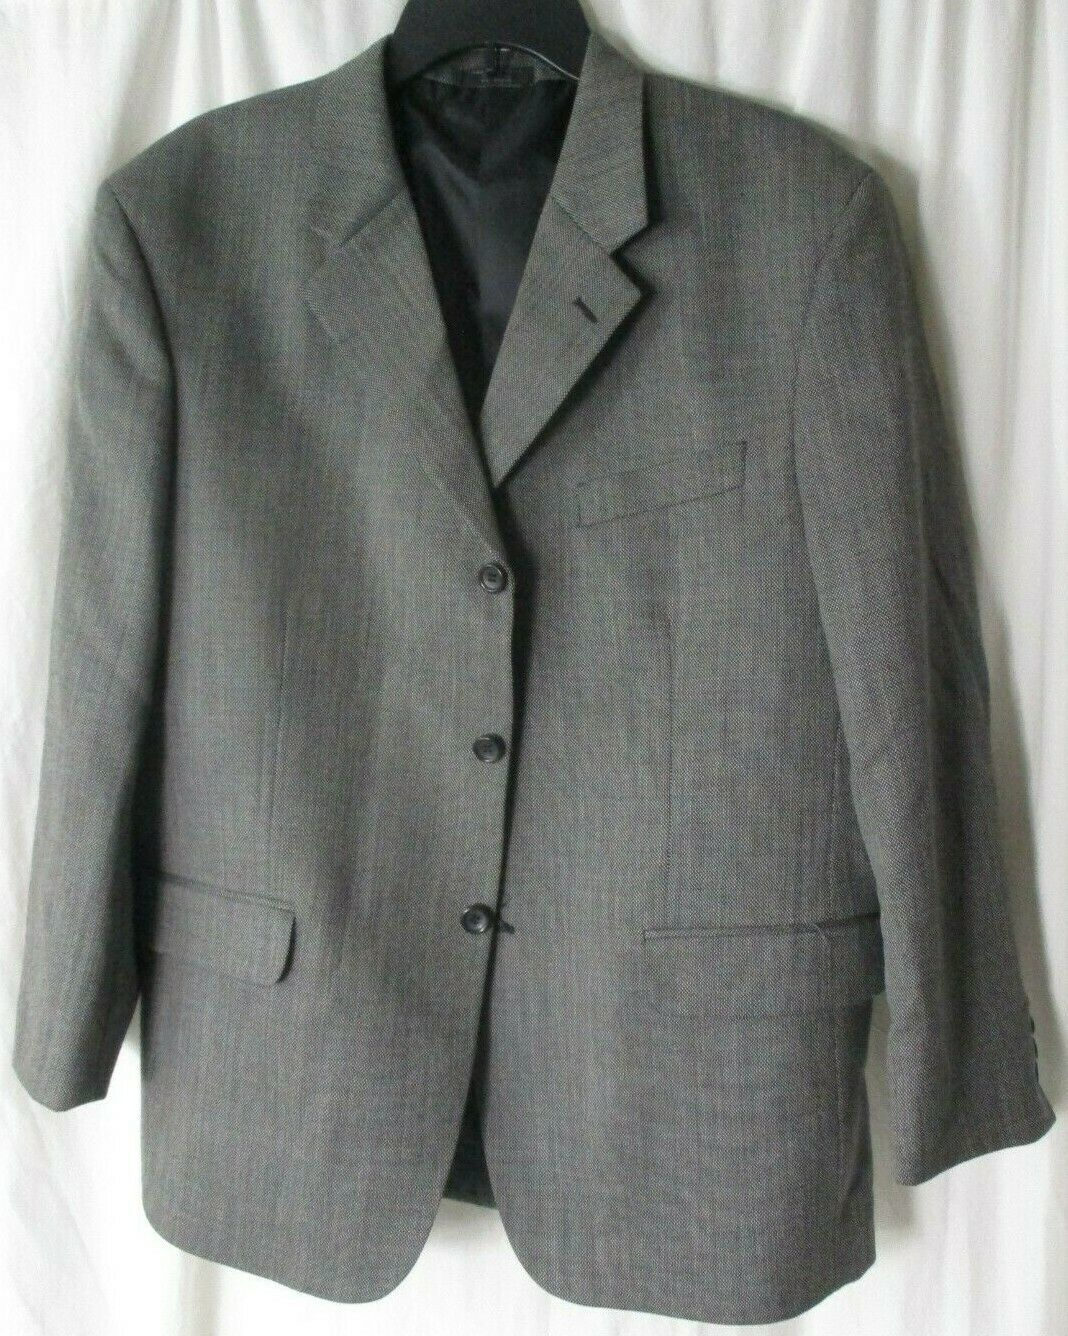 Primary image for Baracuta Athletic Fit Grey Blazer Size 44S 100% Wool